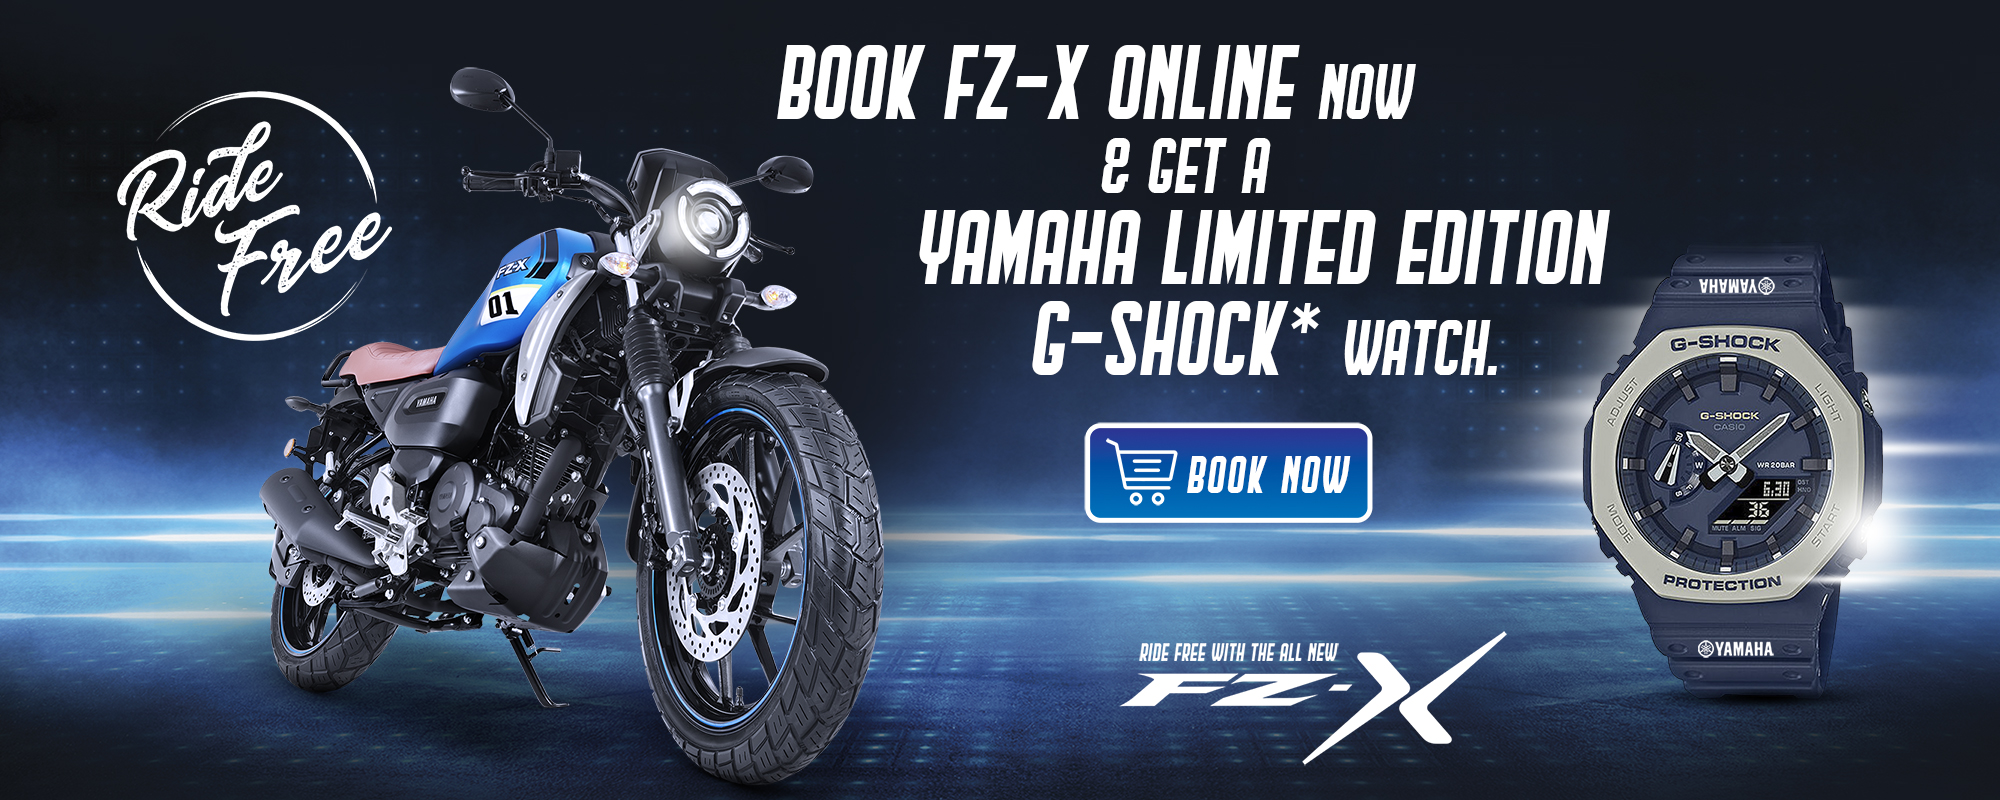 First 200 Customers who will book online will get limited edition Yamaha G-Shock watch